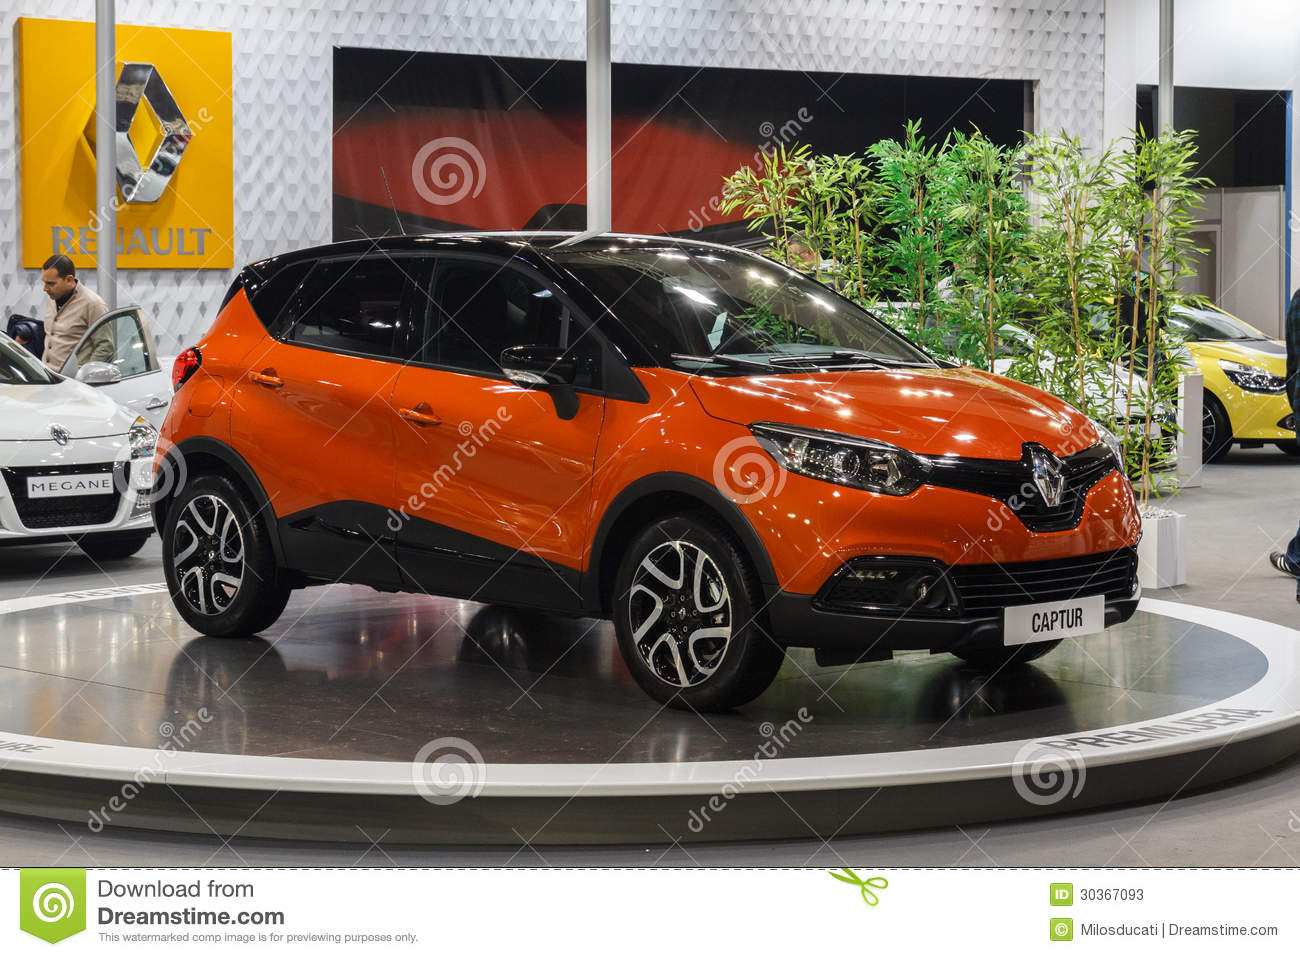 renault capture editorial stock photo image of captur. Black Bedroom Furniture Sets. Home Design Ideas